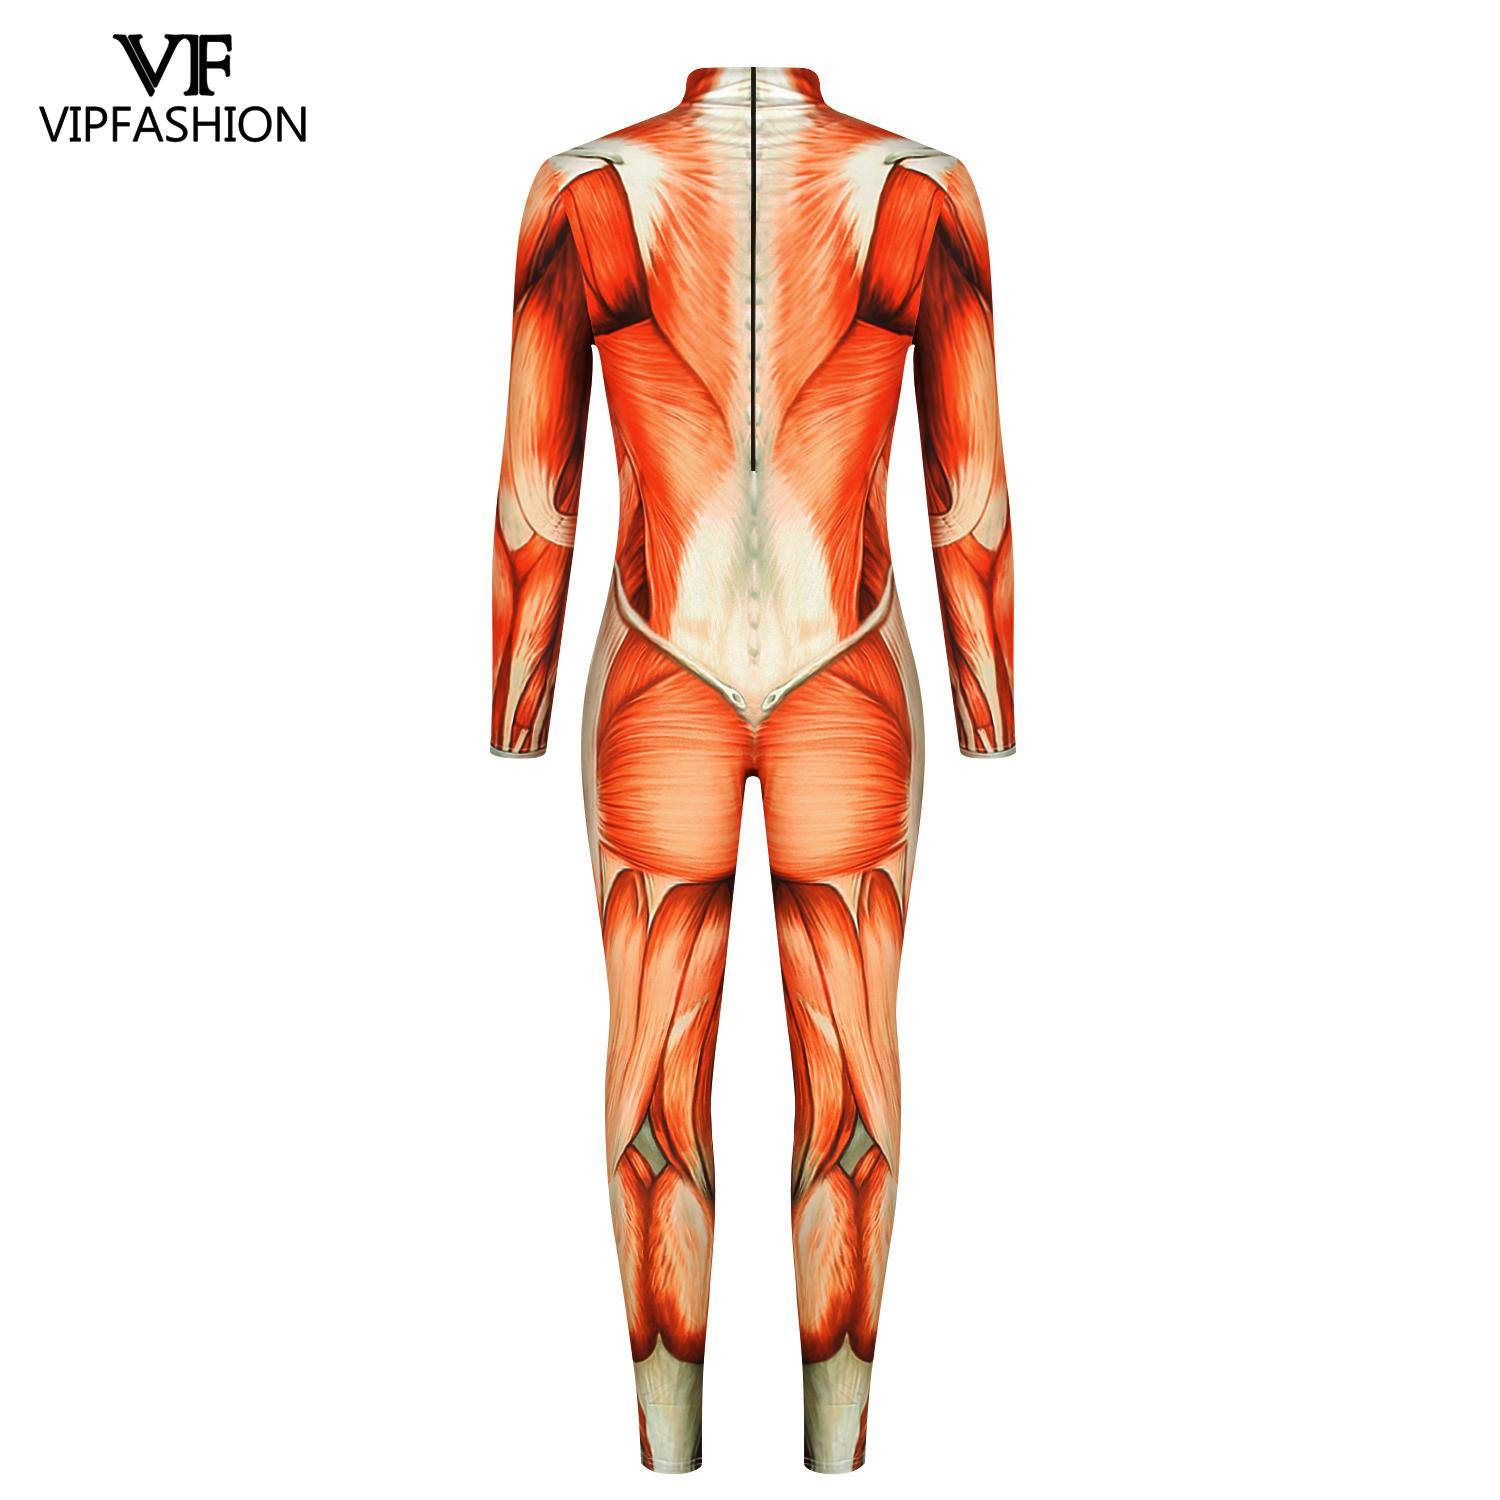 Attack on Titan – Colossal Titan Fully Body Cosplay Costume (Male/Female) Cosplay & Accessories